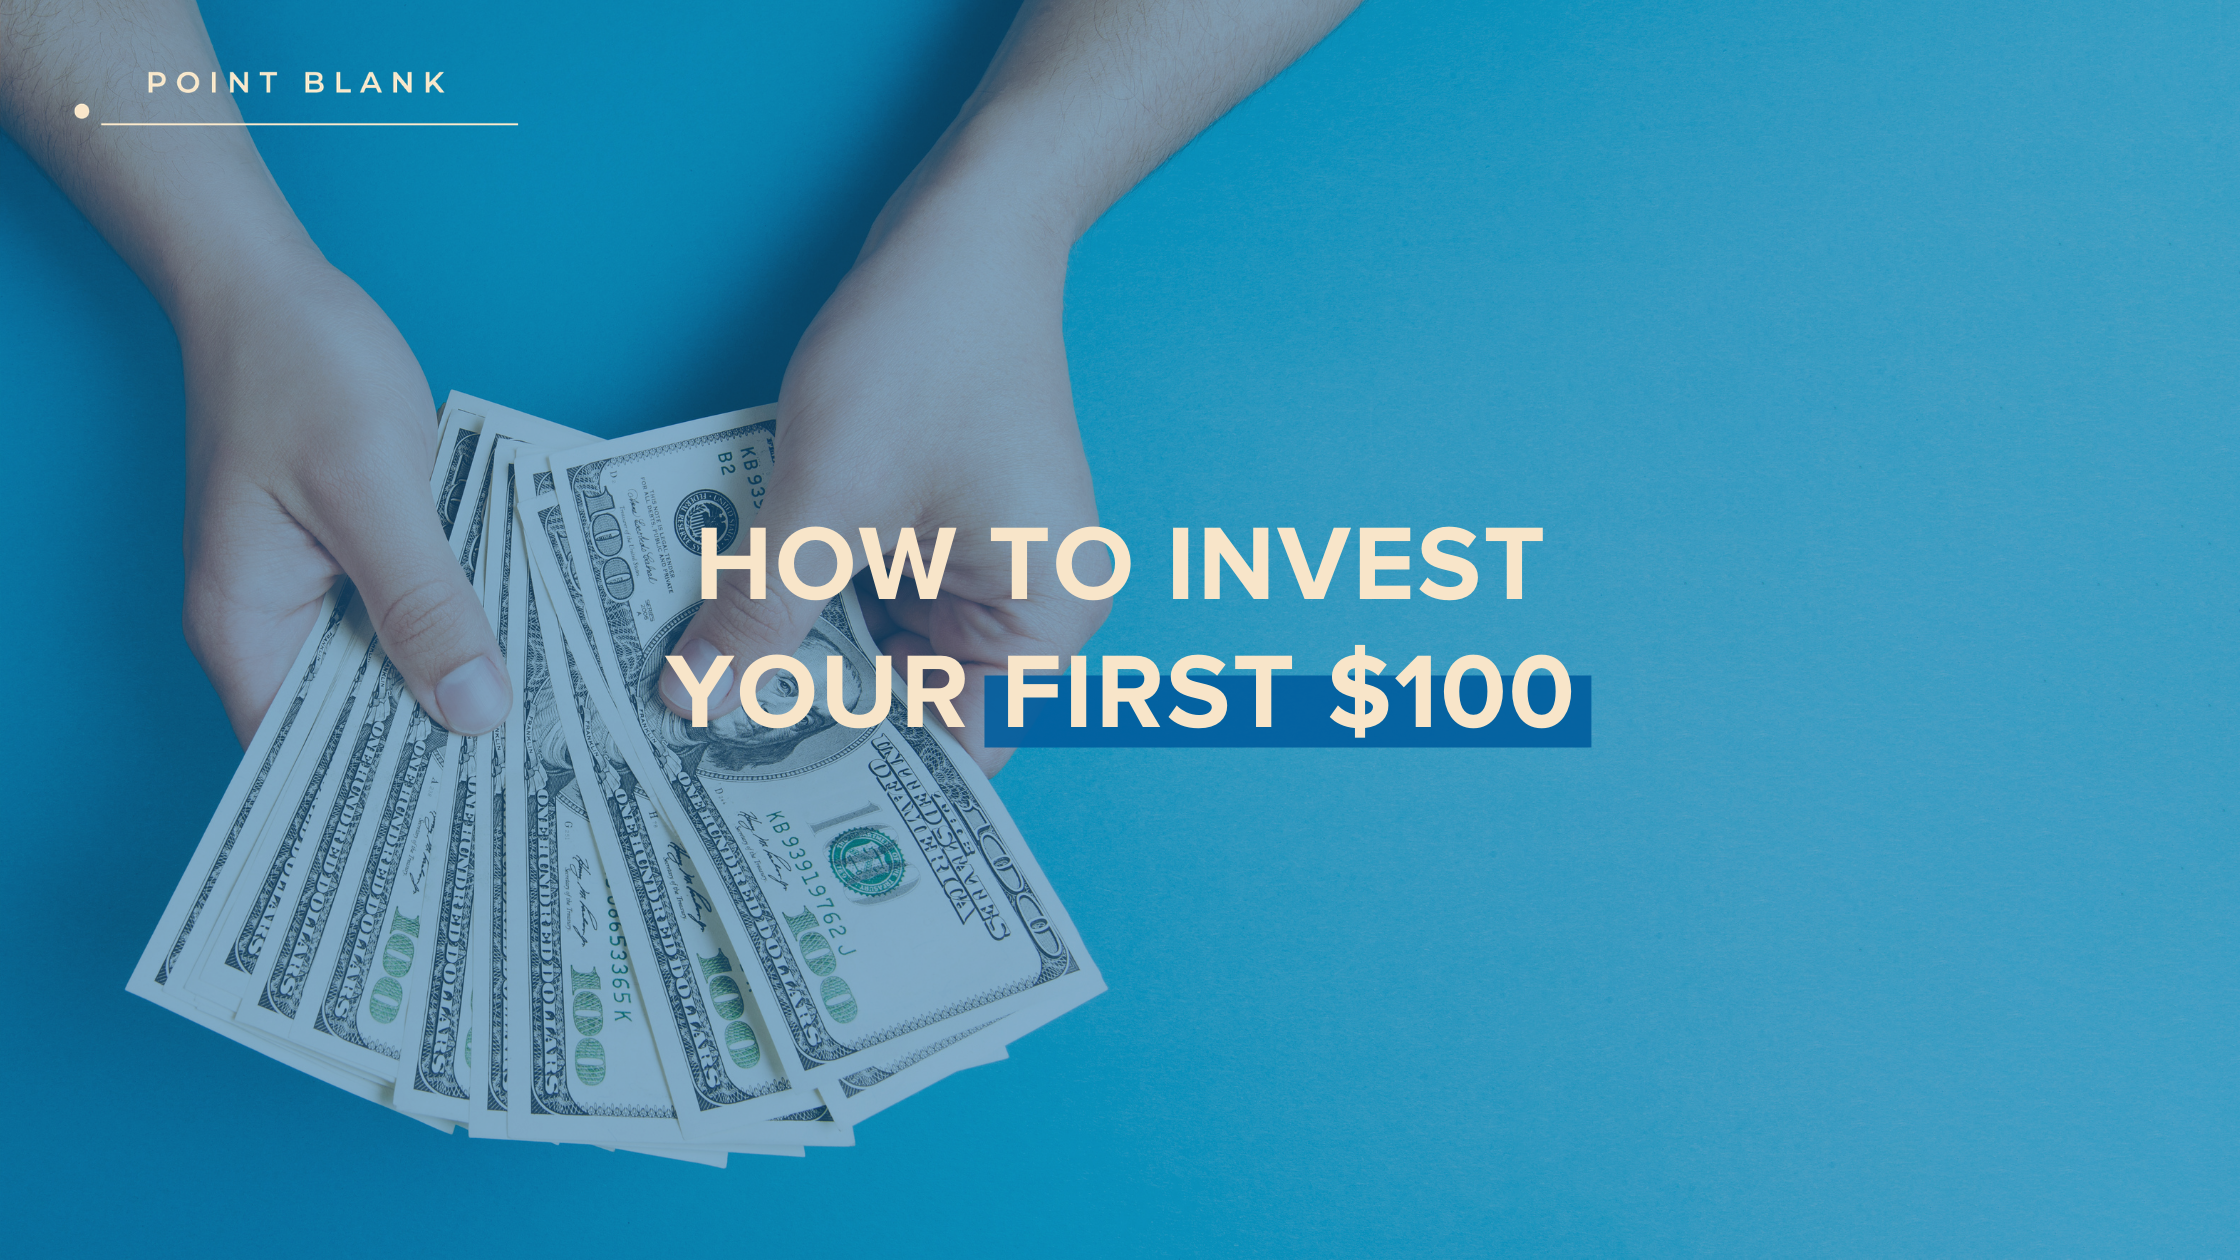 How To Invest Your First $100 - Point Blank Blog